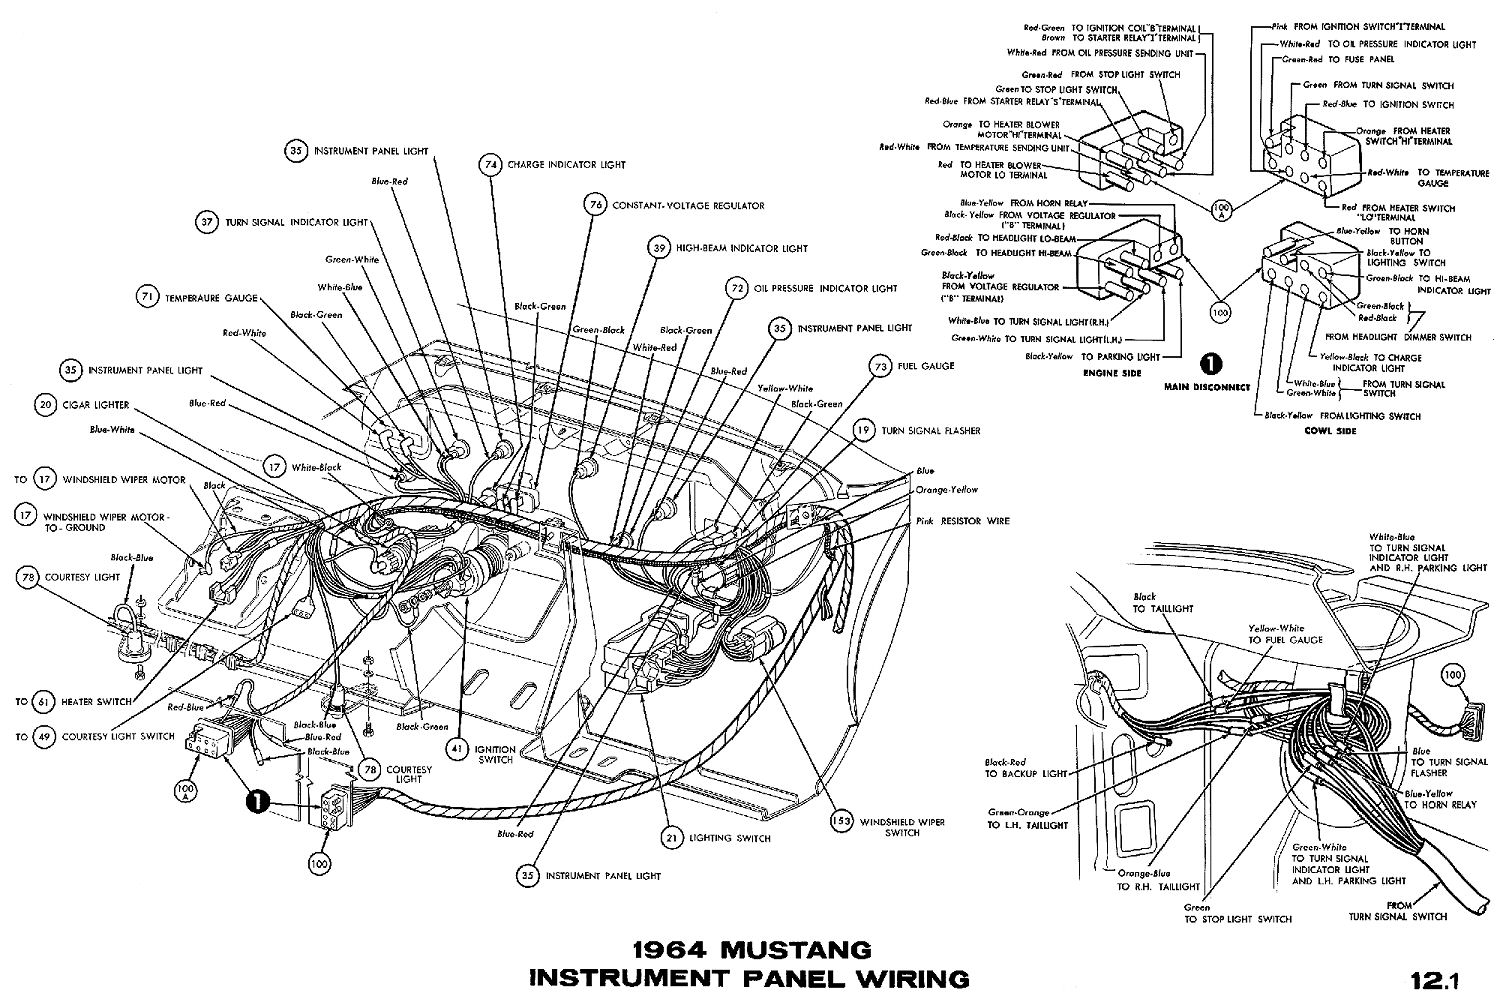 wiring diagram for 1965 mustang – the wiring diagram, Wiring diagram